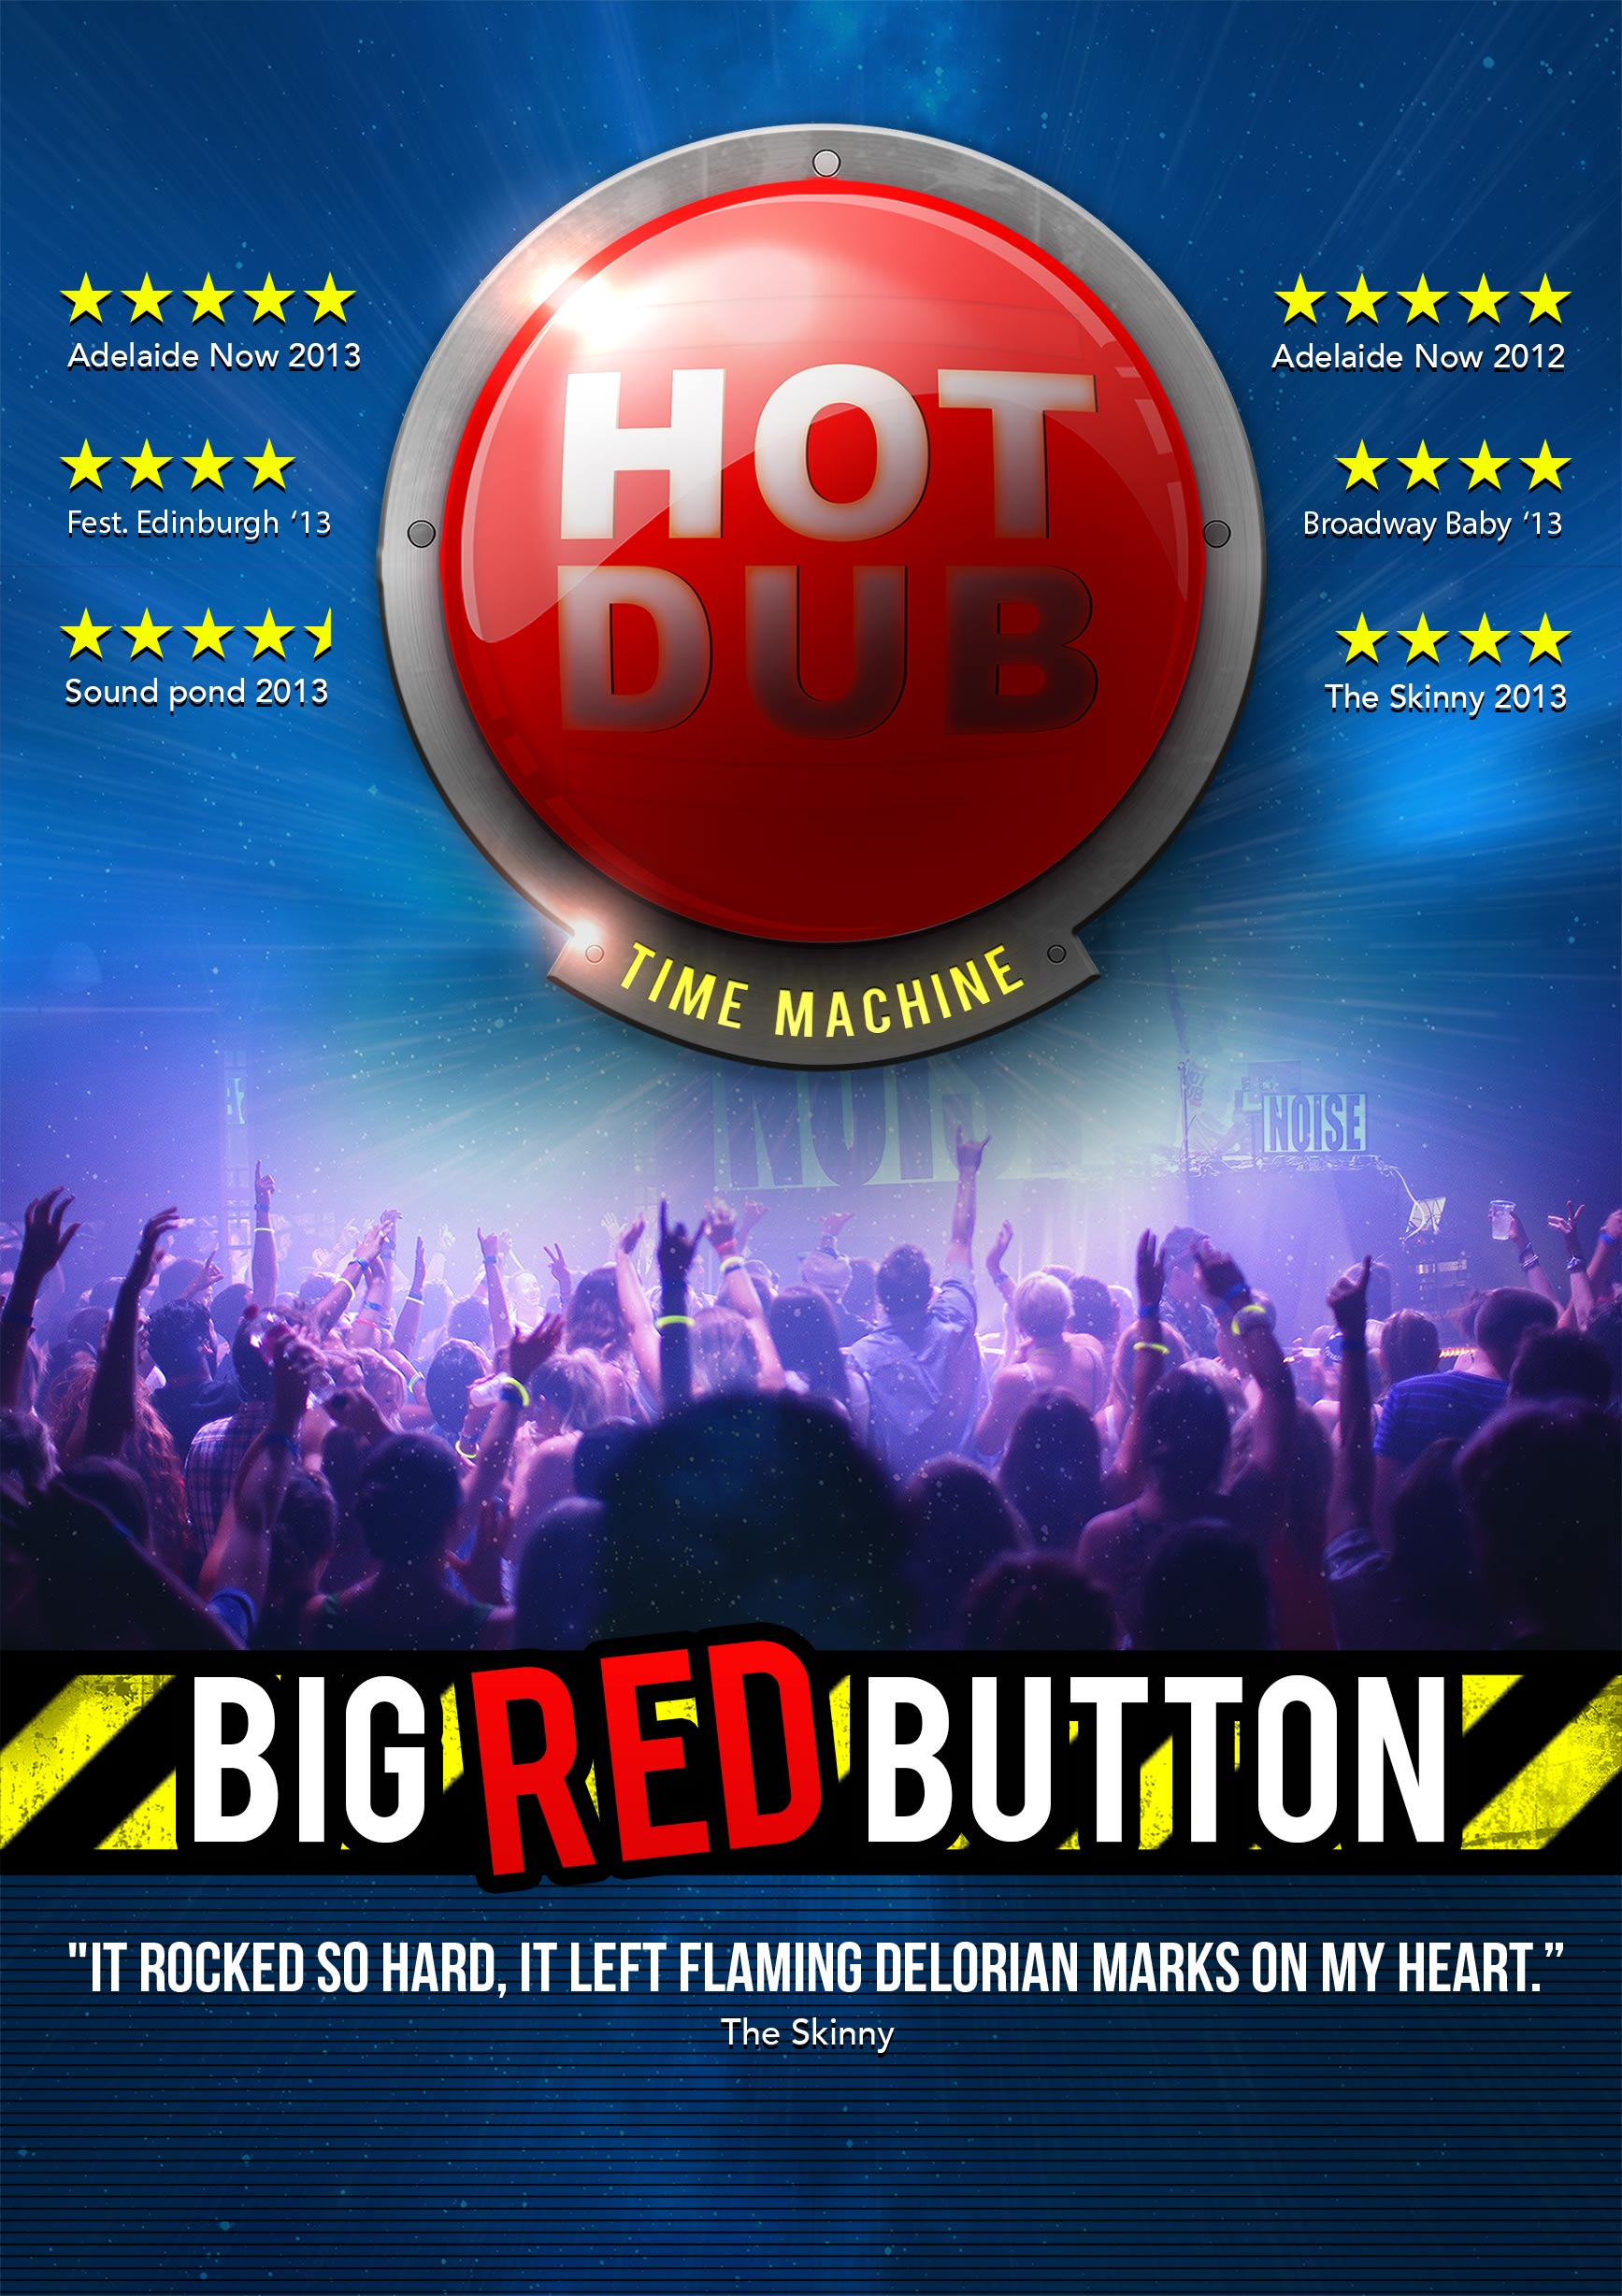 HOT DUB TIME MACHINE - Big Red Button